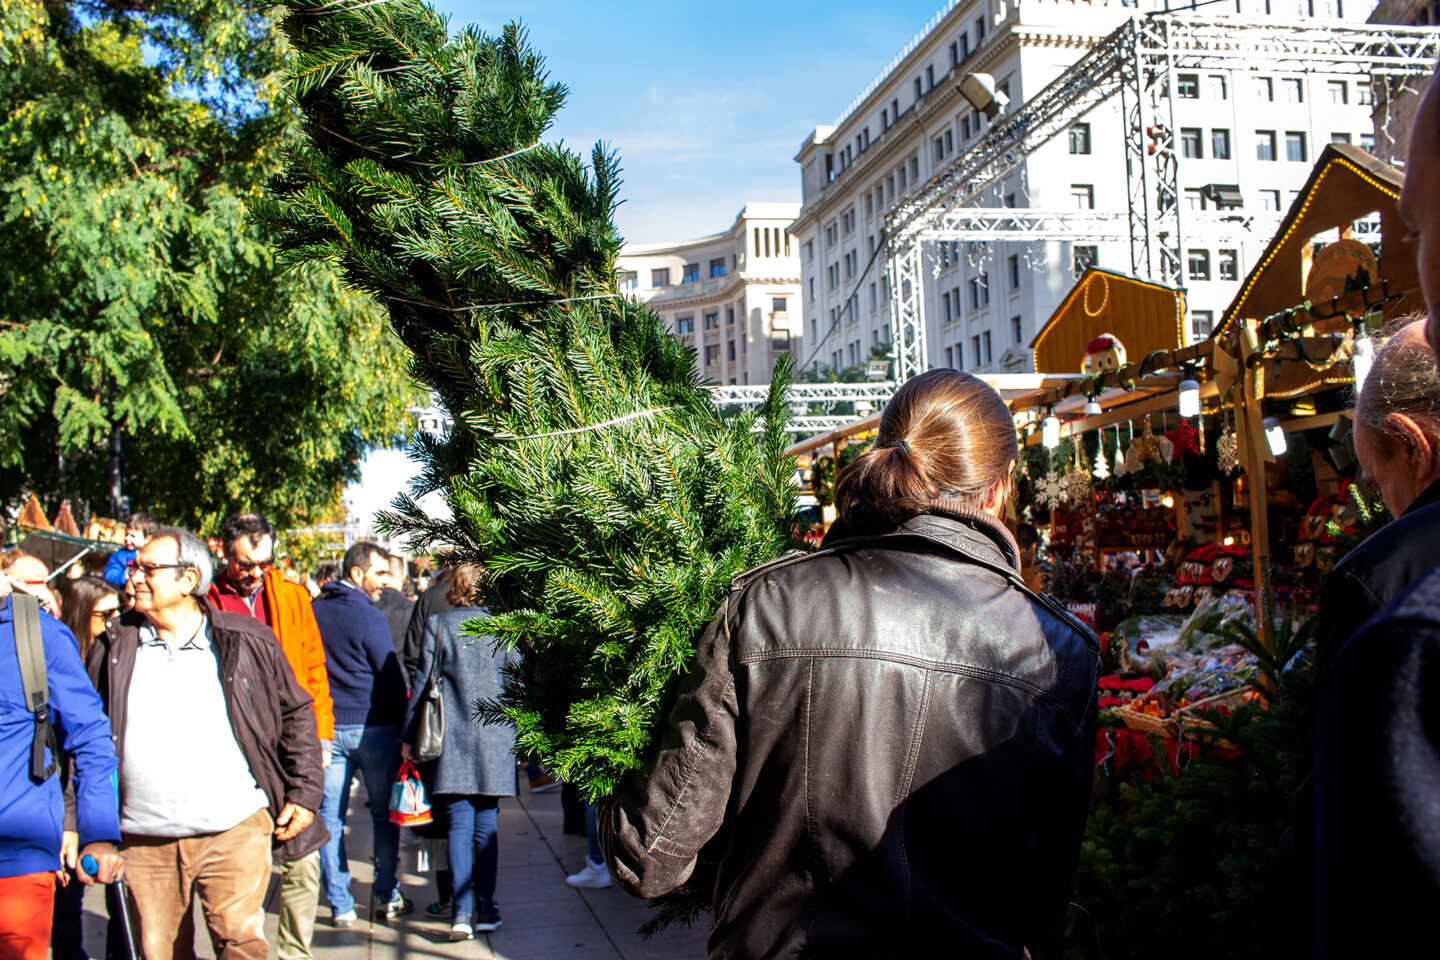 Man carrying tree in Barcelona Christmas Markets